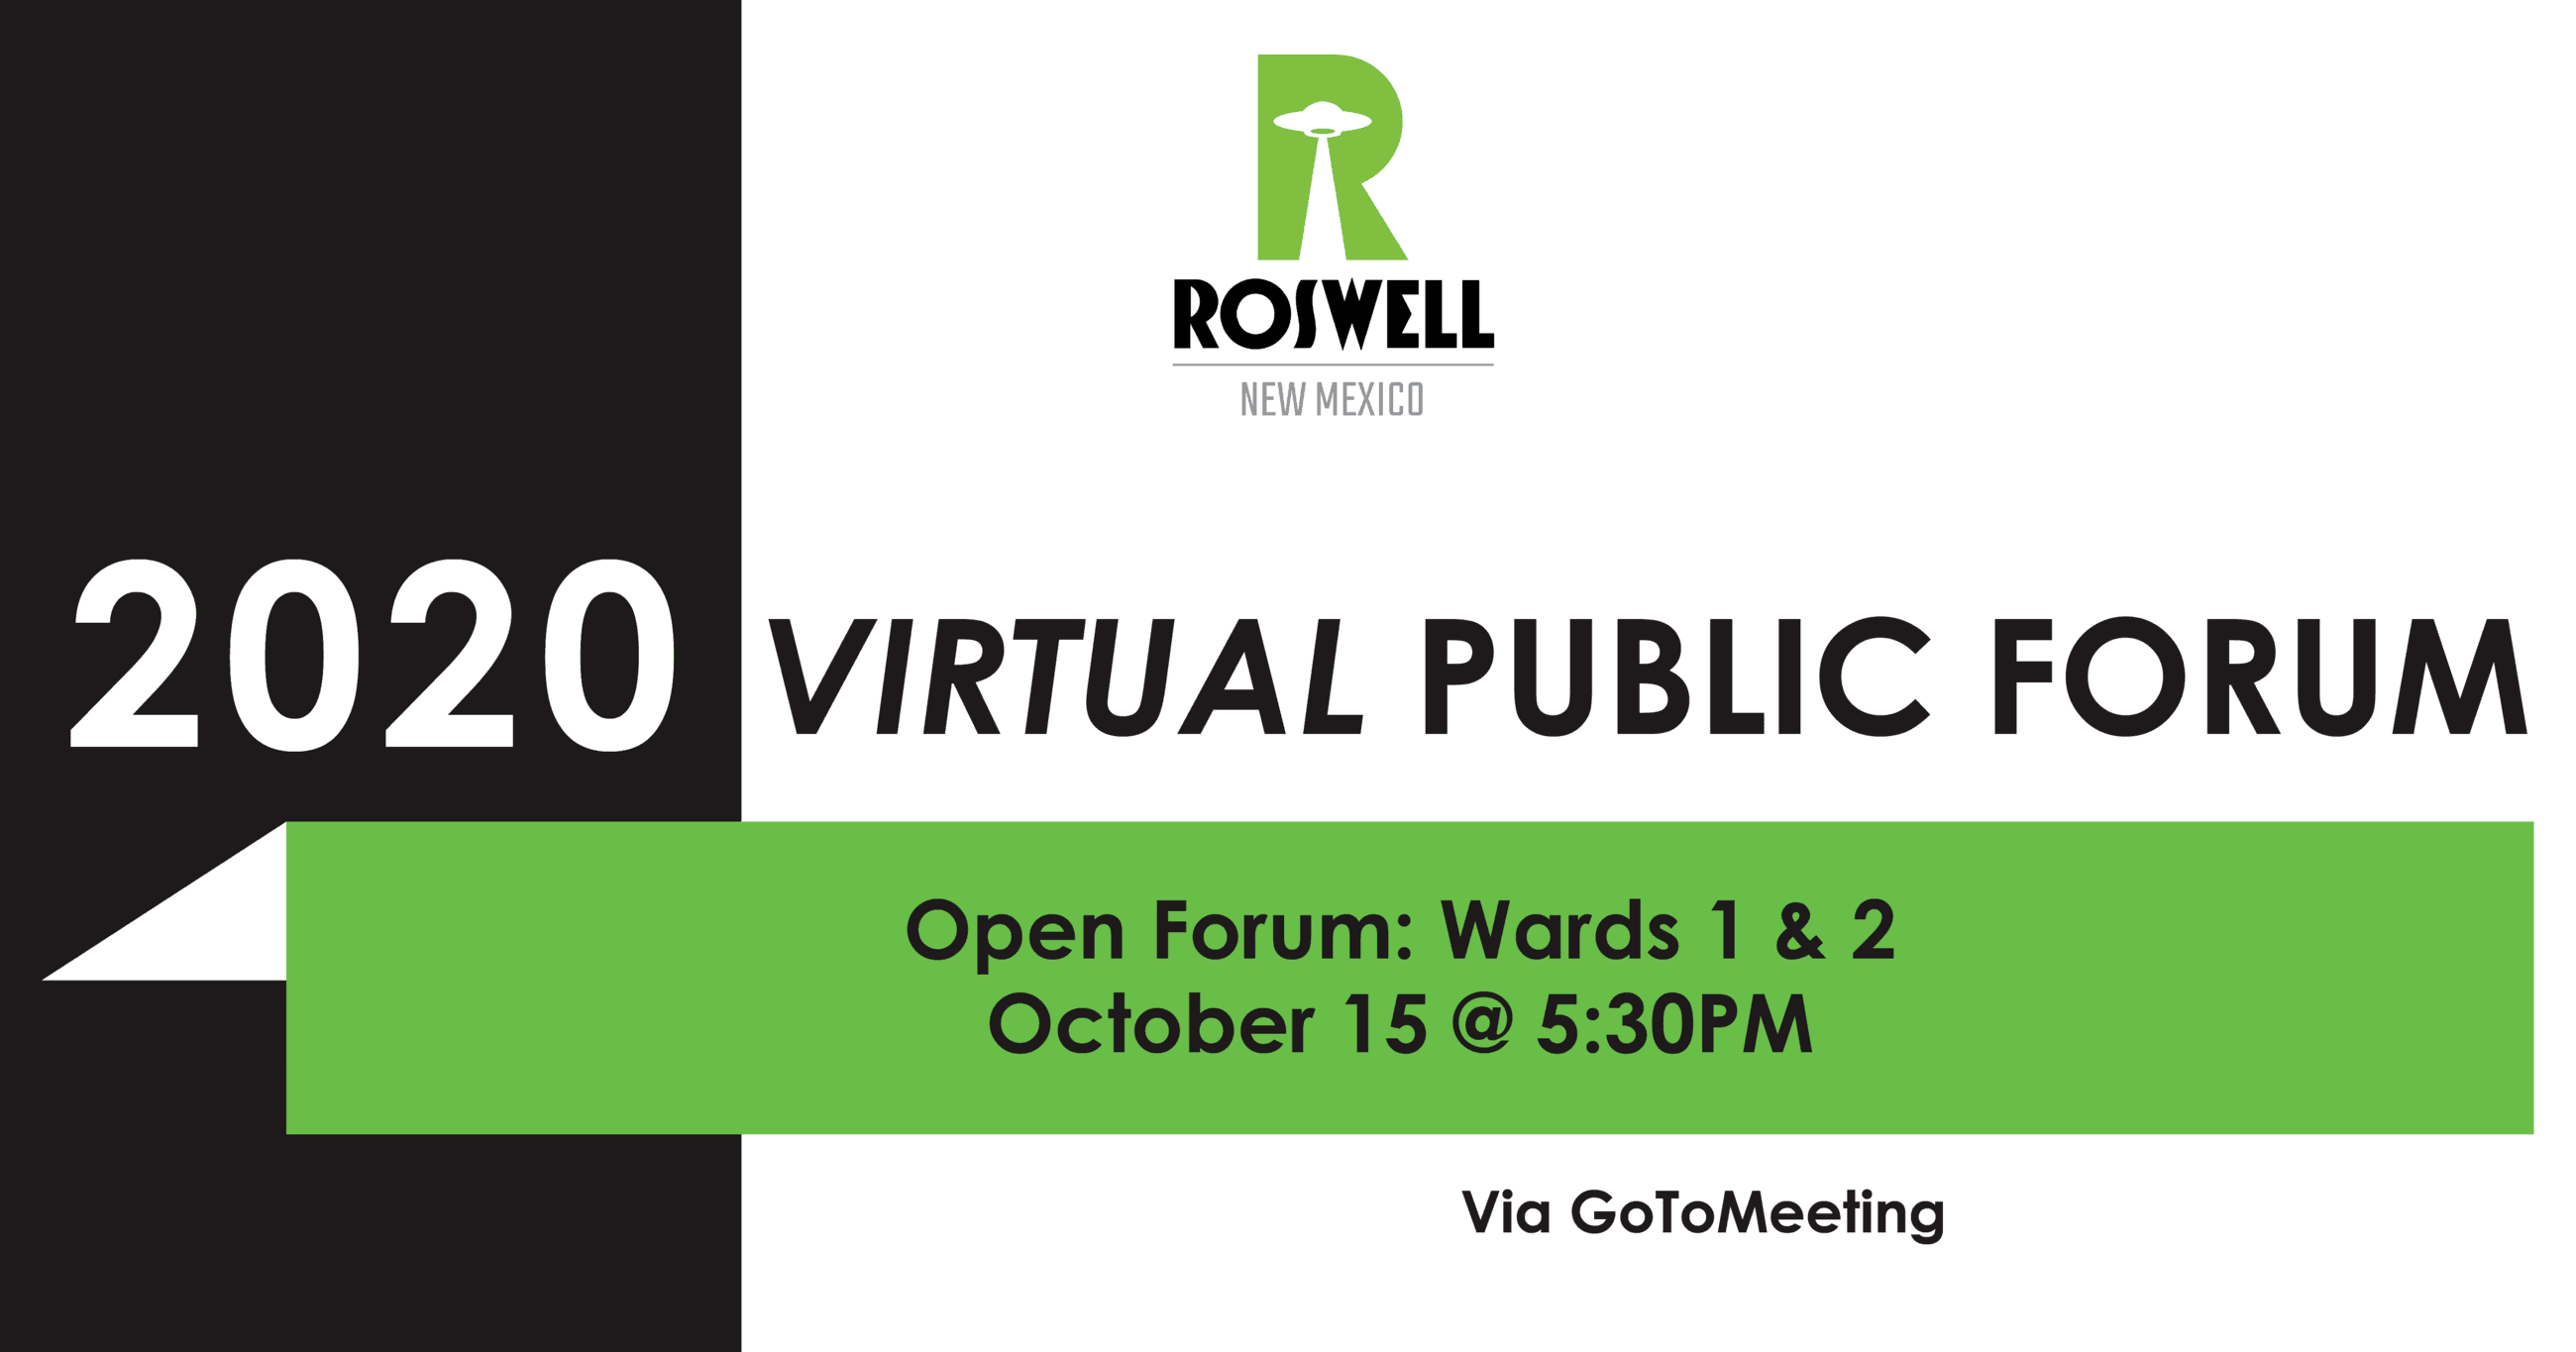 Infographic on 2020 Virtual Public Forum - Ward 1 & 2